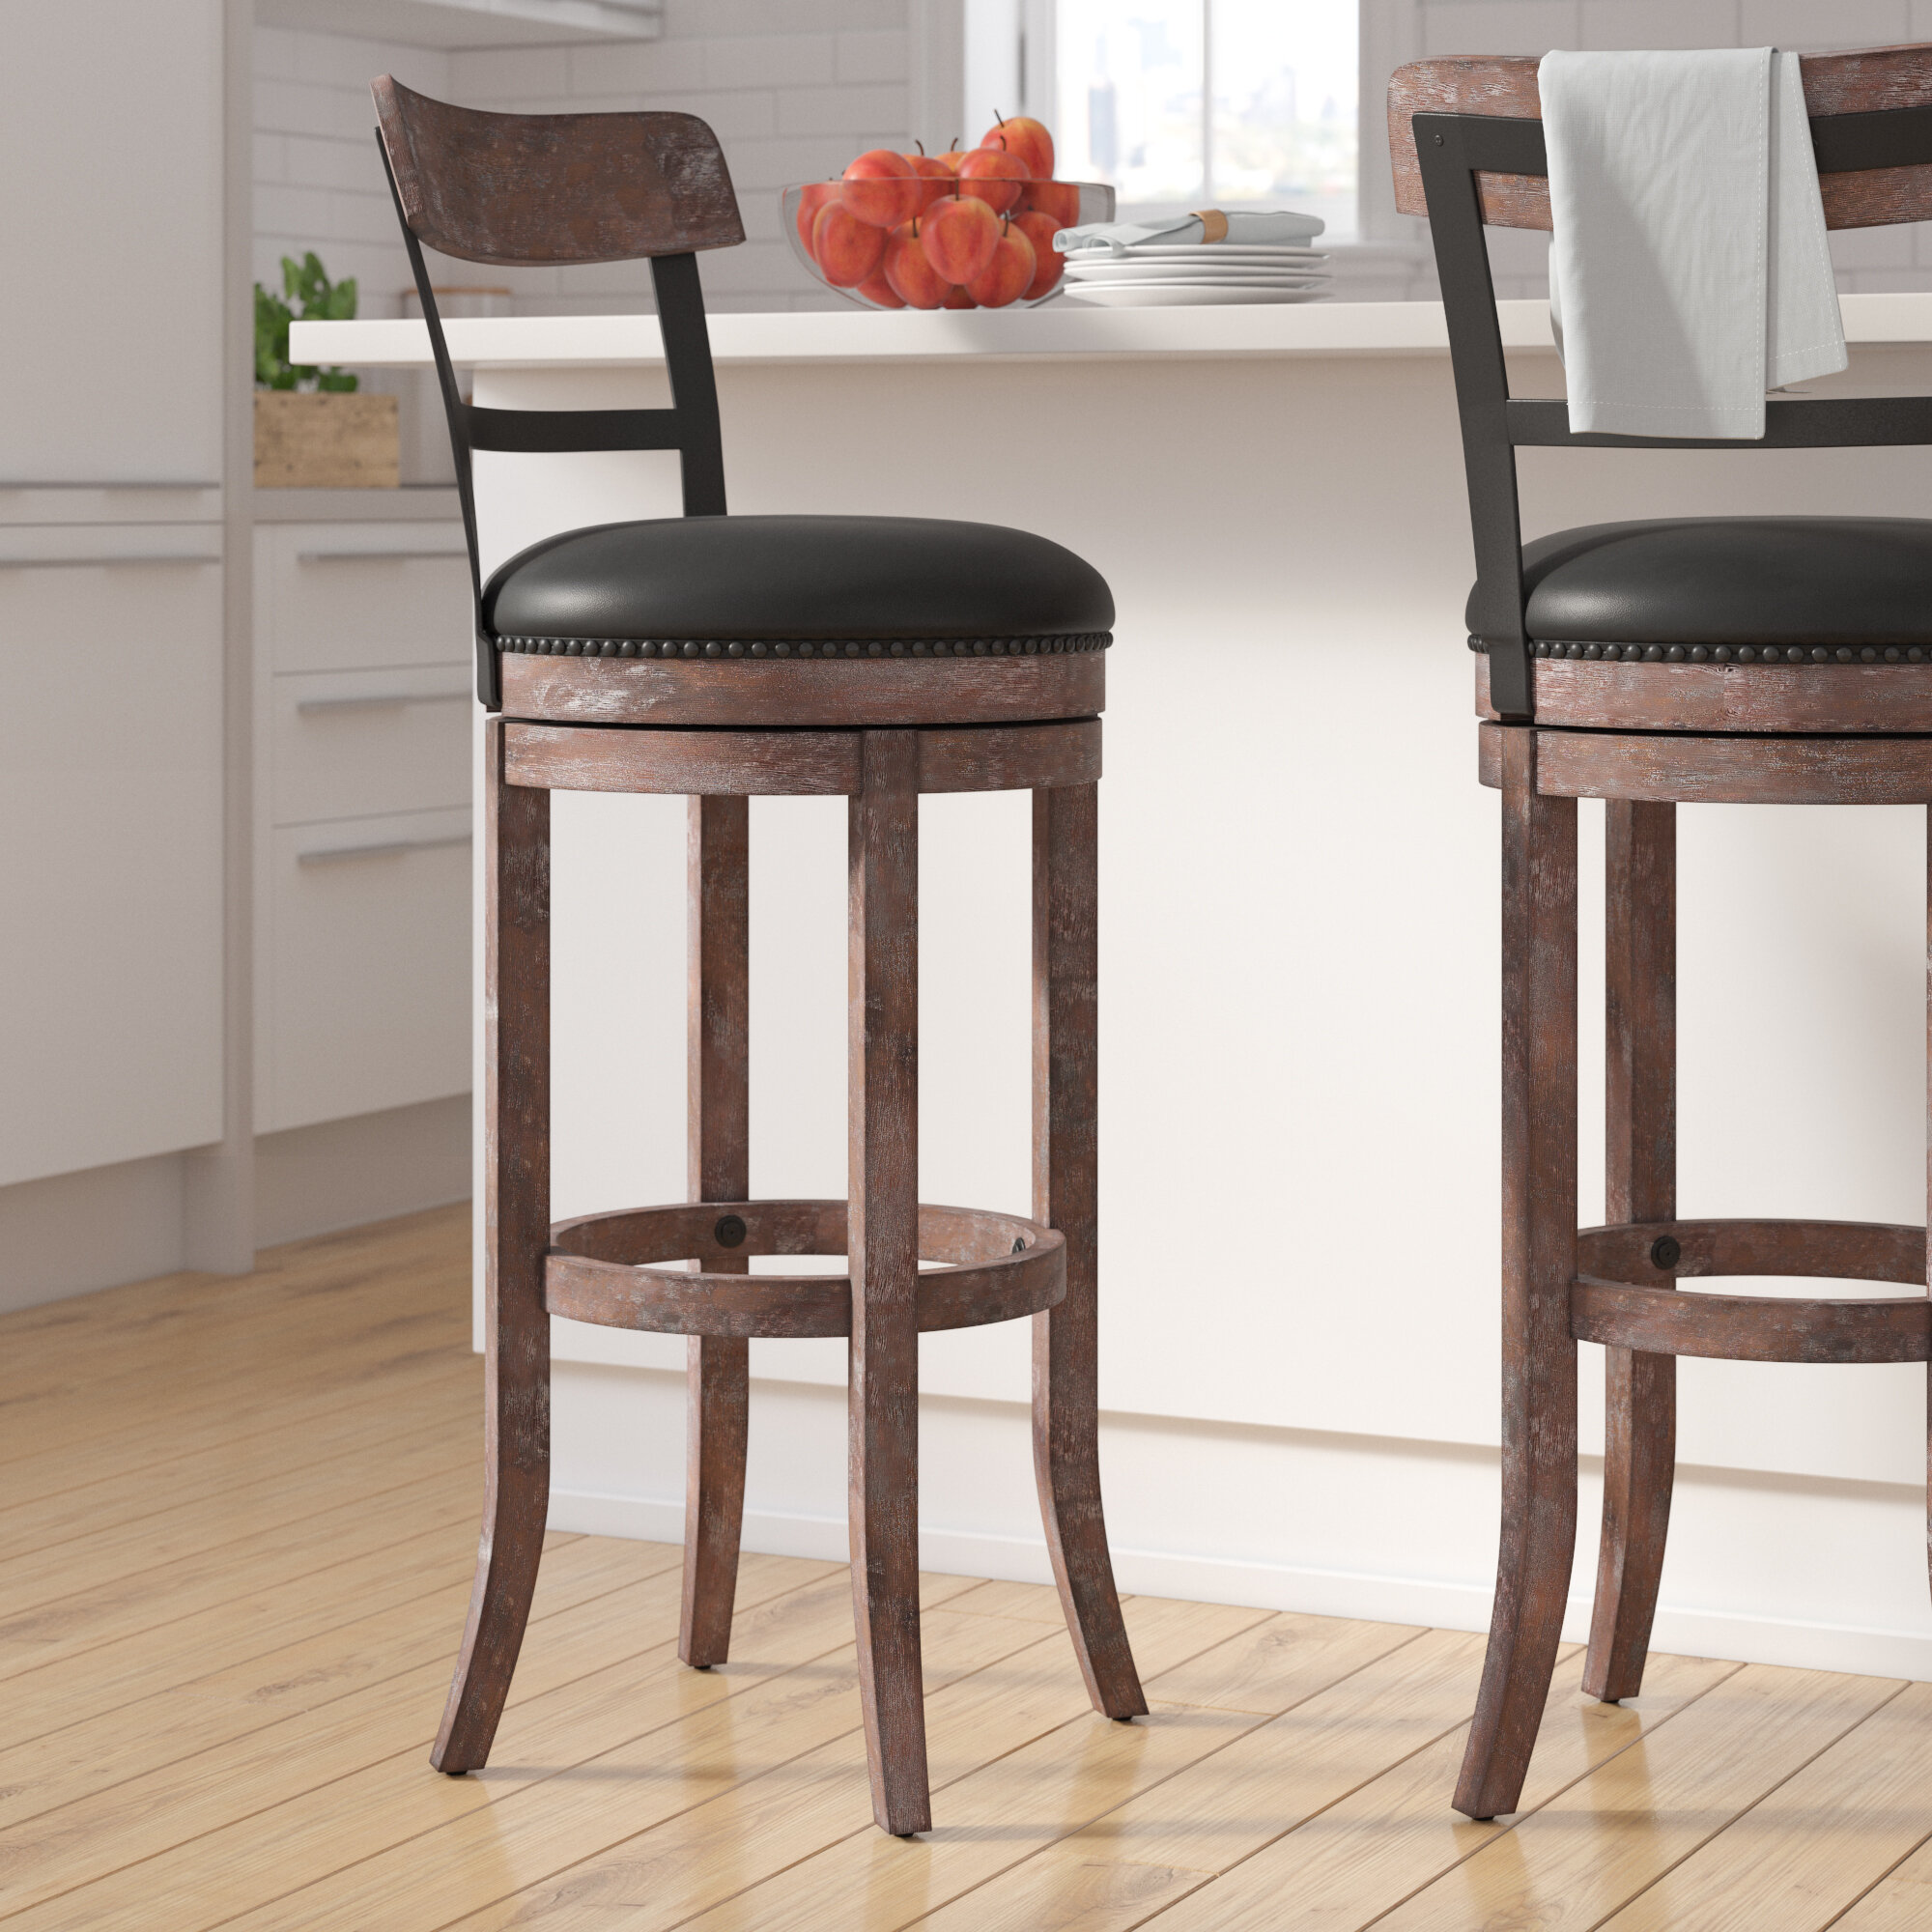 Darby home co carondelet 34 swivel tall bar stool reviews wayfair